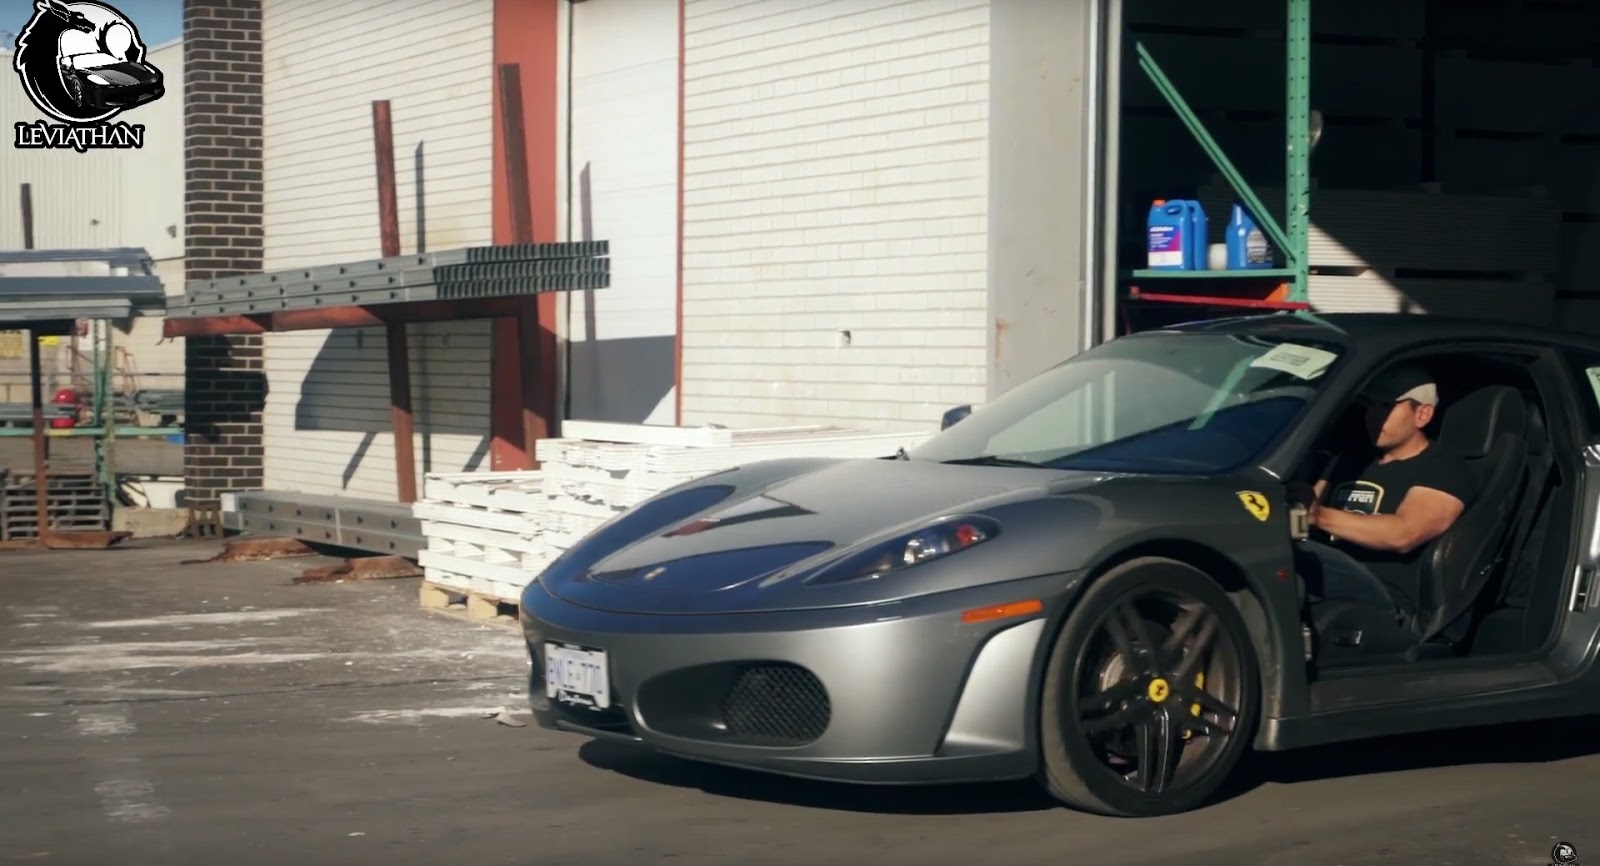 how much for a ferrari f430 replacement door try 40 000. Cars Review. Best American Auto & Cars Review